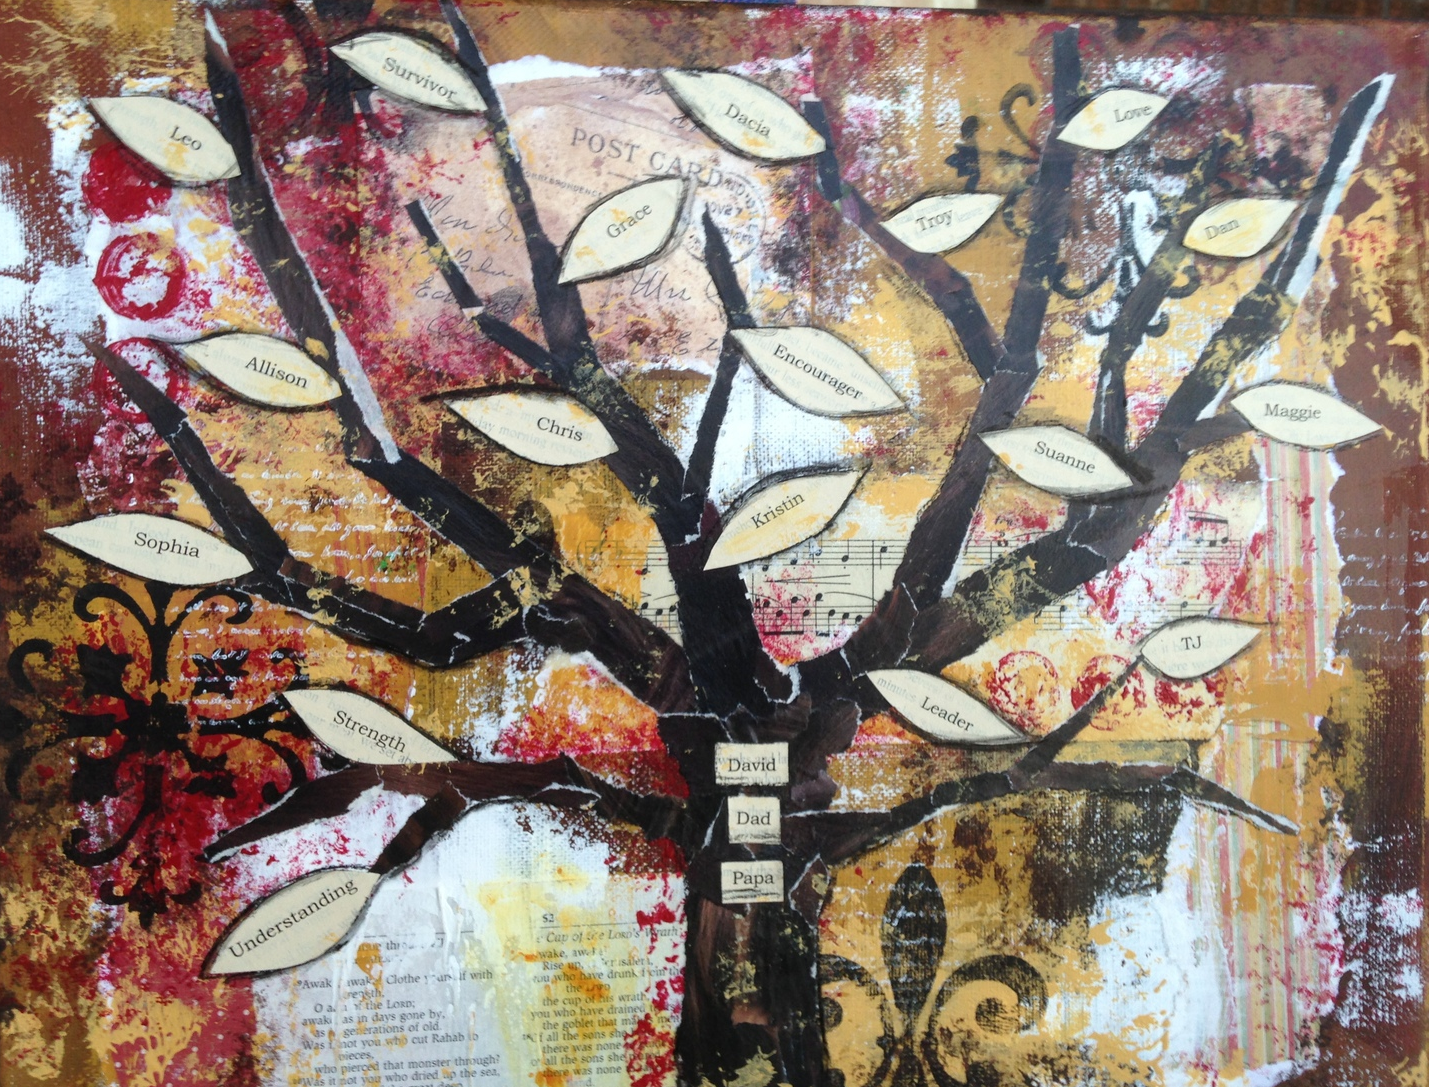 Adding the tree and leaves.  The tree was created with recycled magazine pages.  The leaves hold family member names.